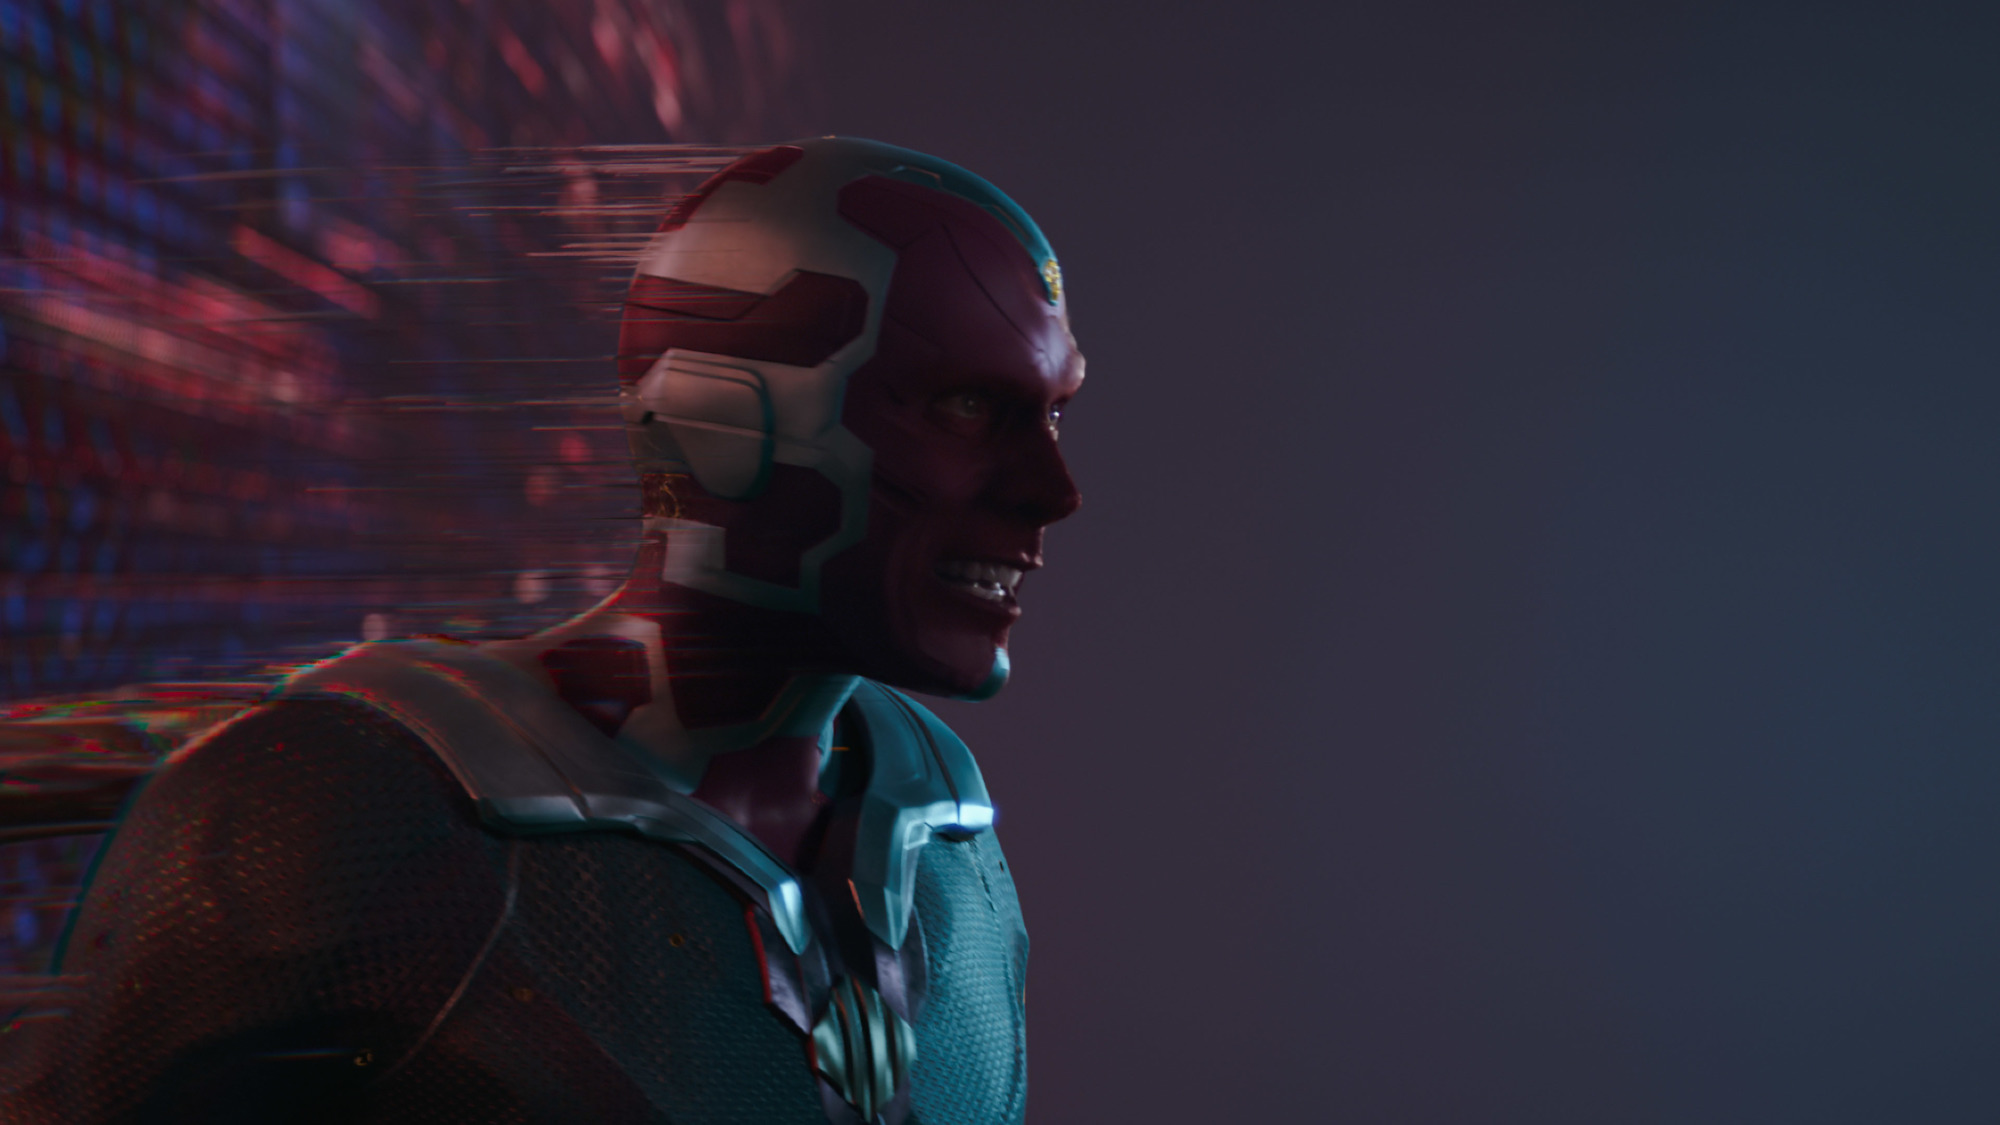 Paul Bettany as Vision trying to leave the Hex in 'WandaVision'